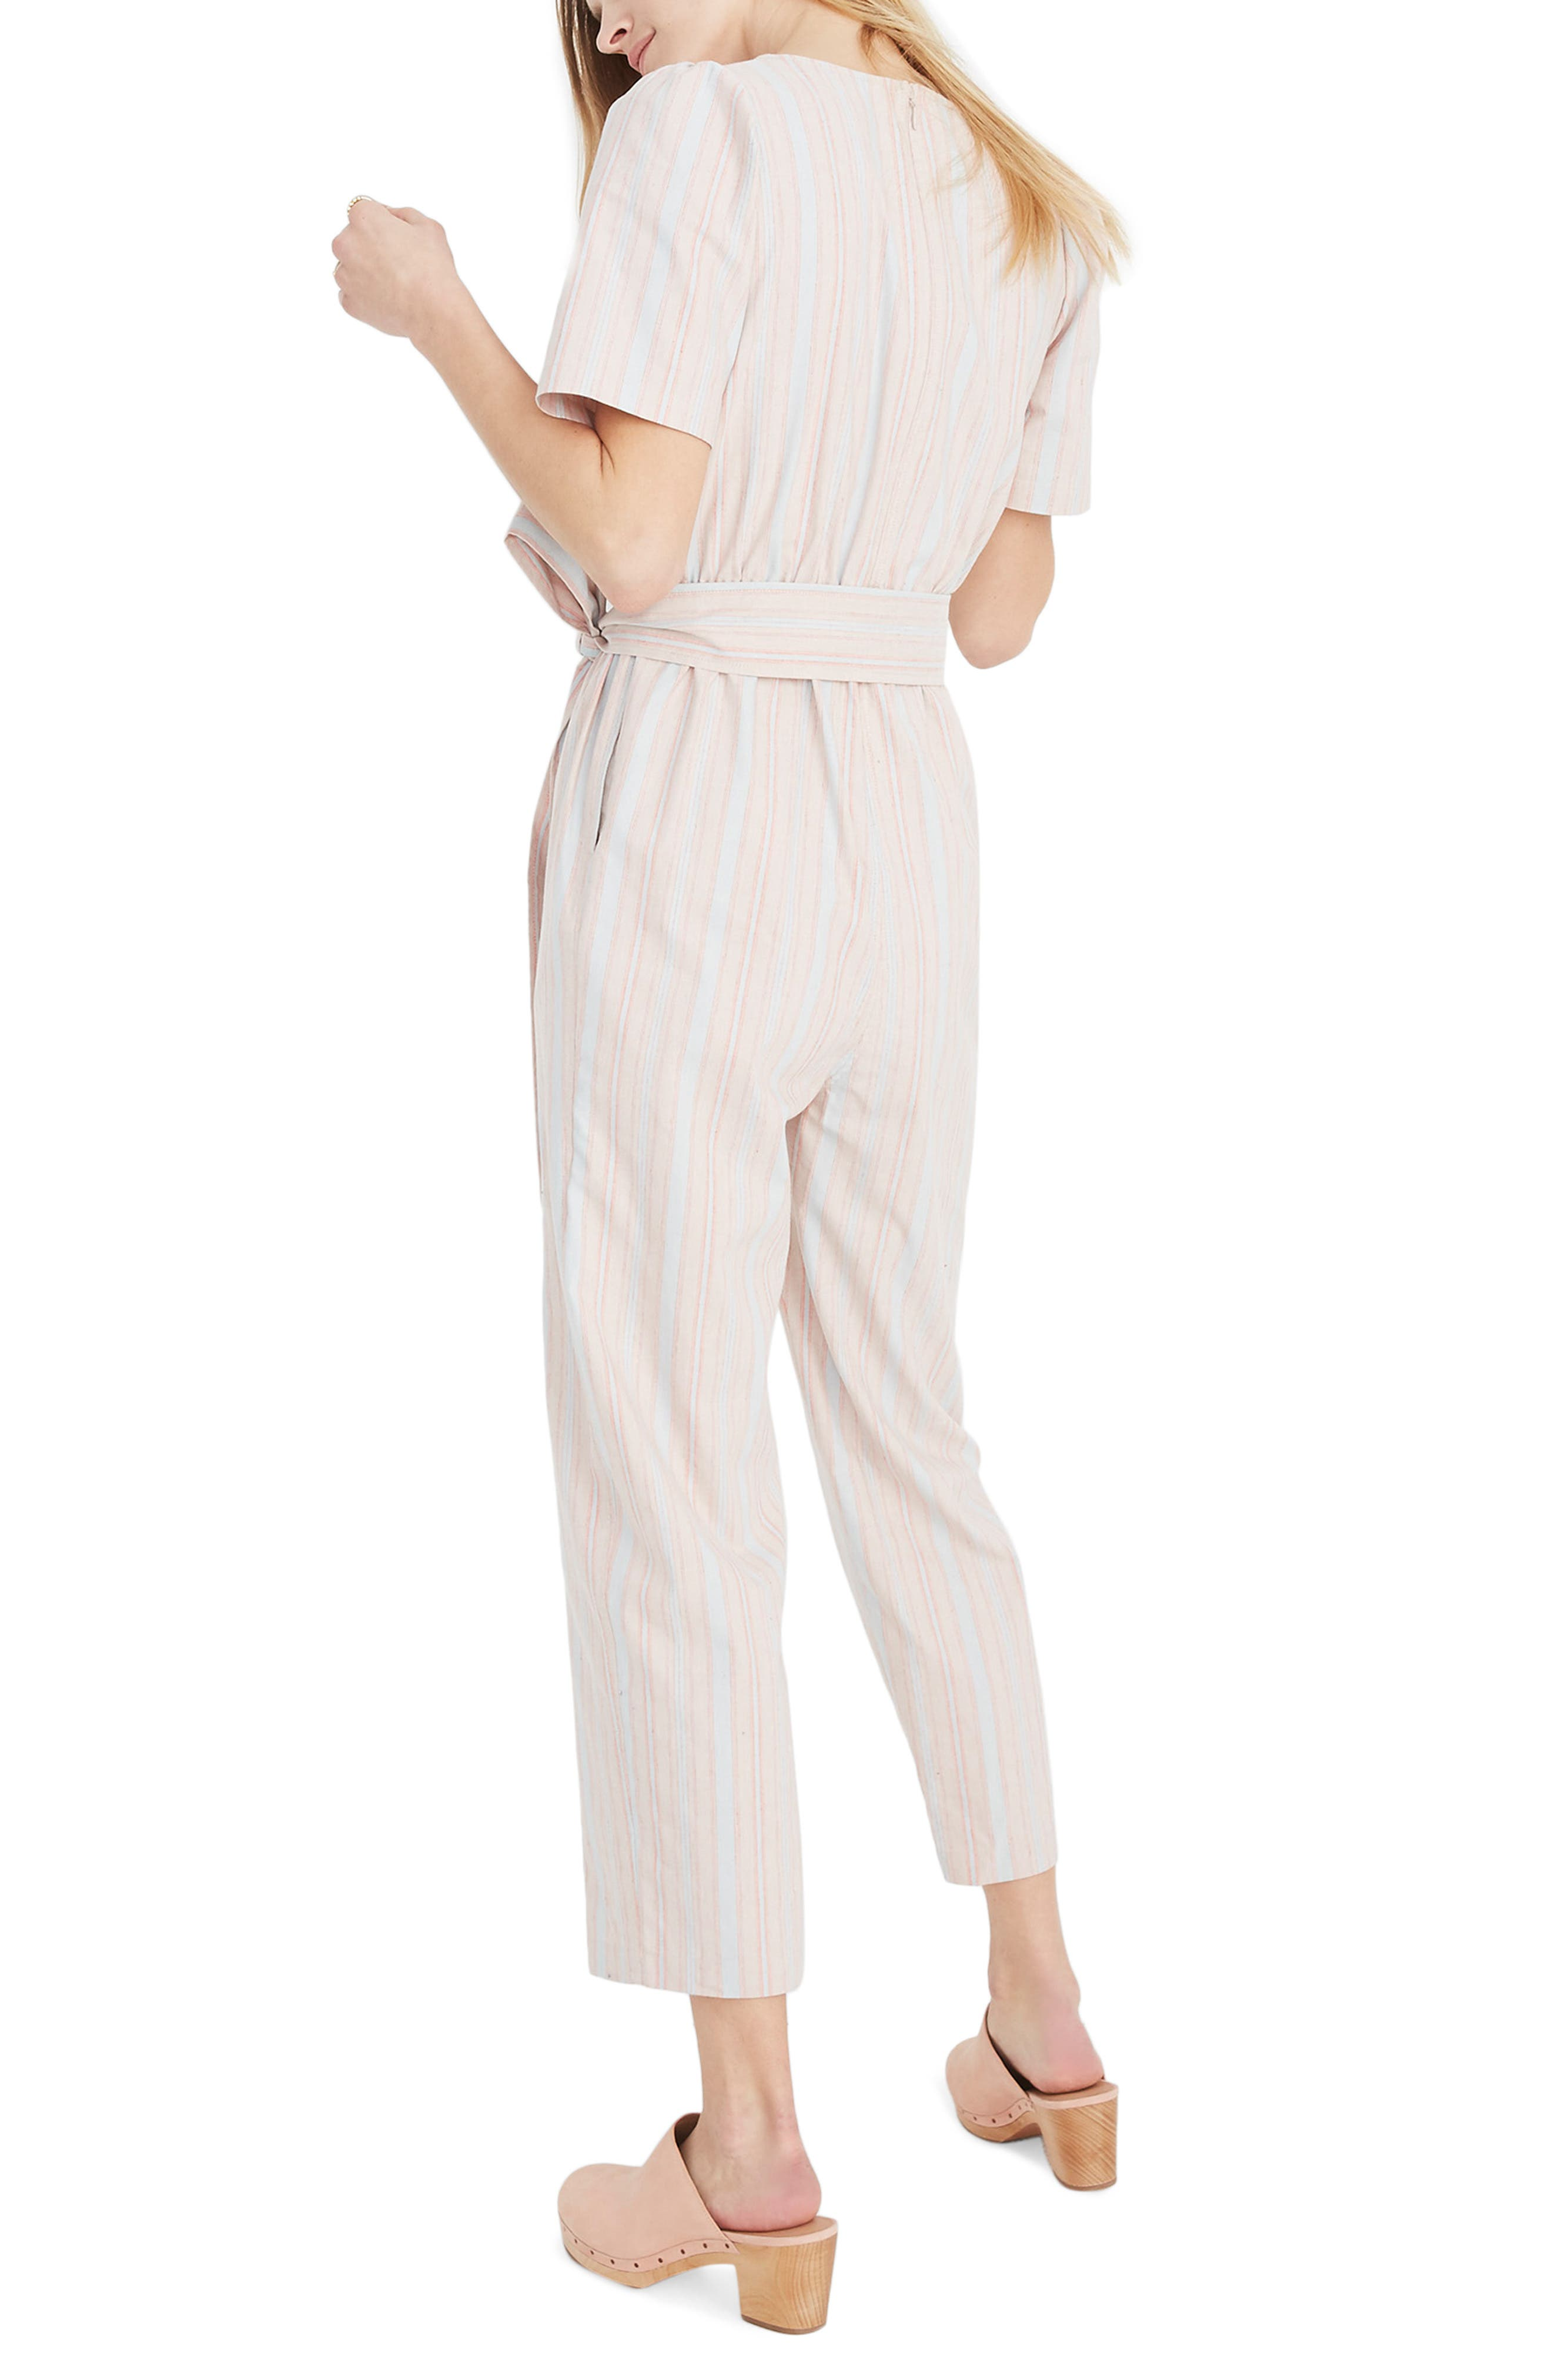 MADEWELL, Puff Sleeve Tapered Jumpsuit, Alternate thumbnail 2, color, 400